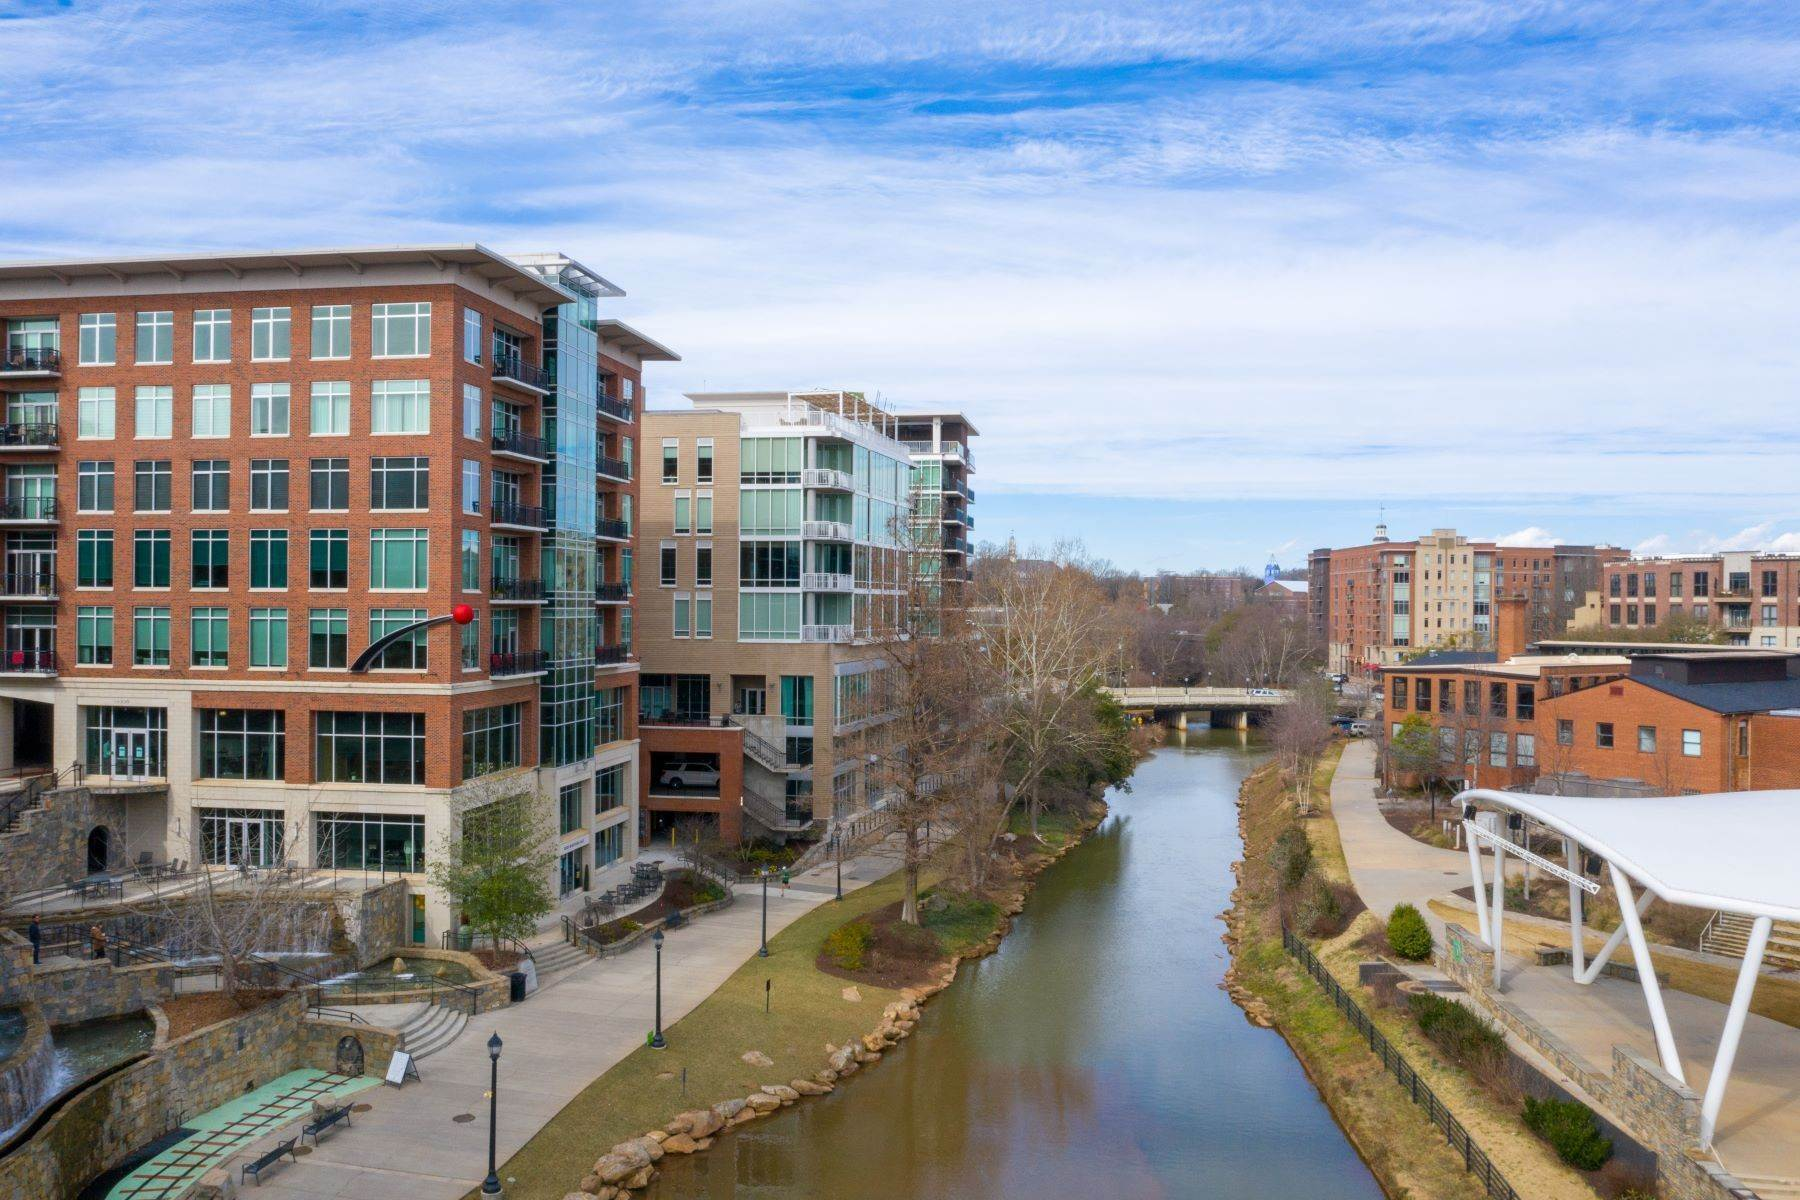 6. Condominiums for Sale at 220 Riverplace, Greenville, SC 29601 220 Riverplace, unit 702, Greenville, SC 29601